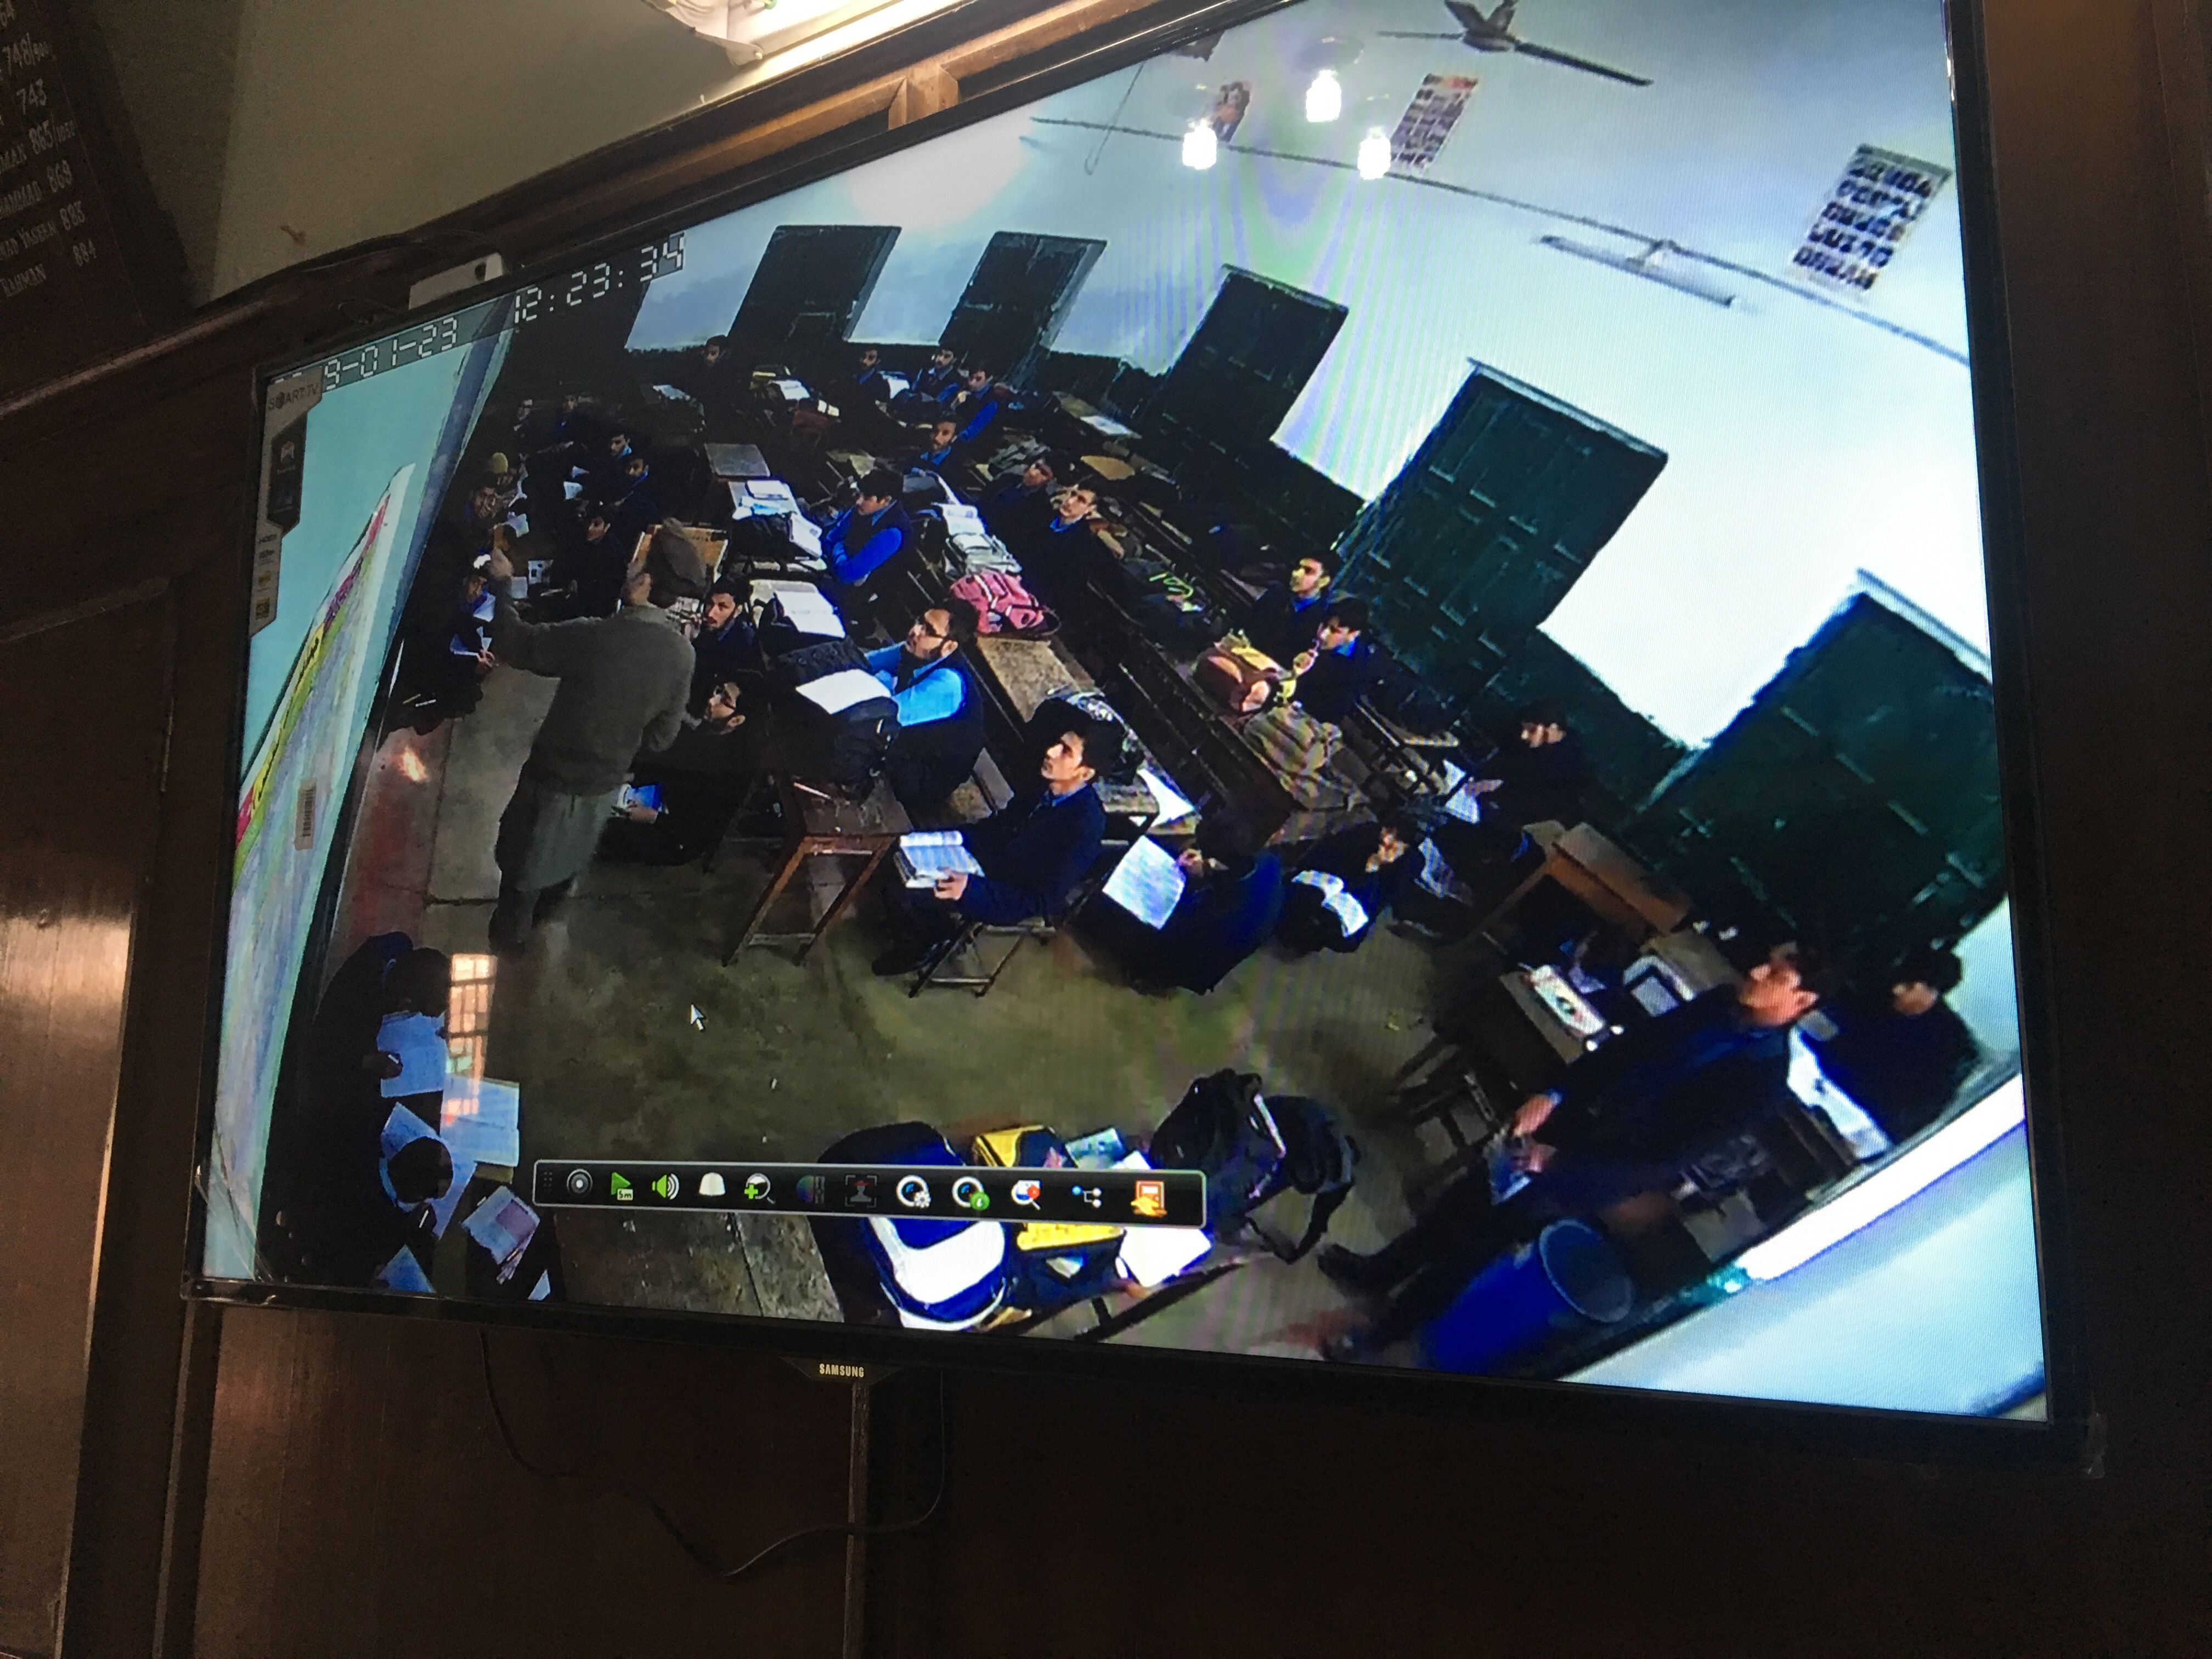 Peshawar public school first to install CCTV system